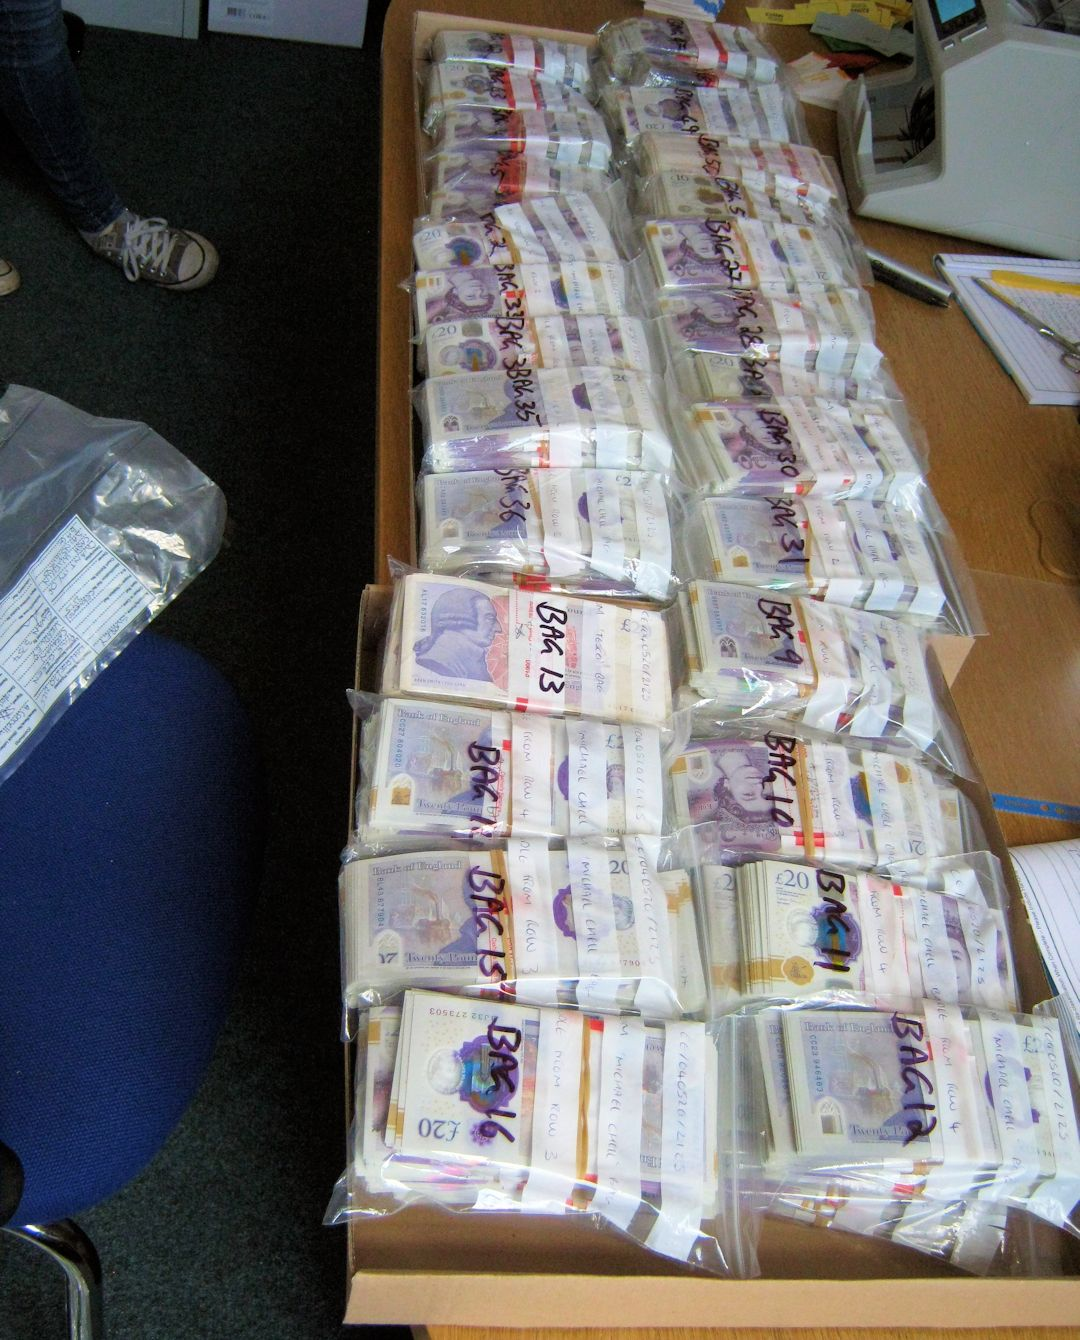 Surrey and Sussex Police support international operation targeting international serious and organised crime